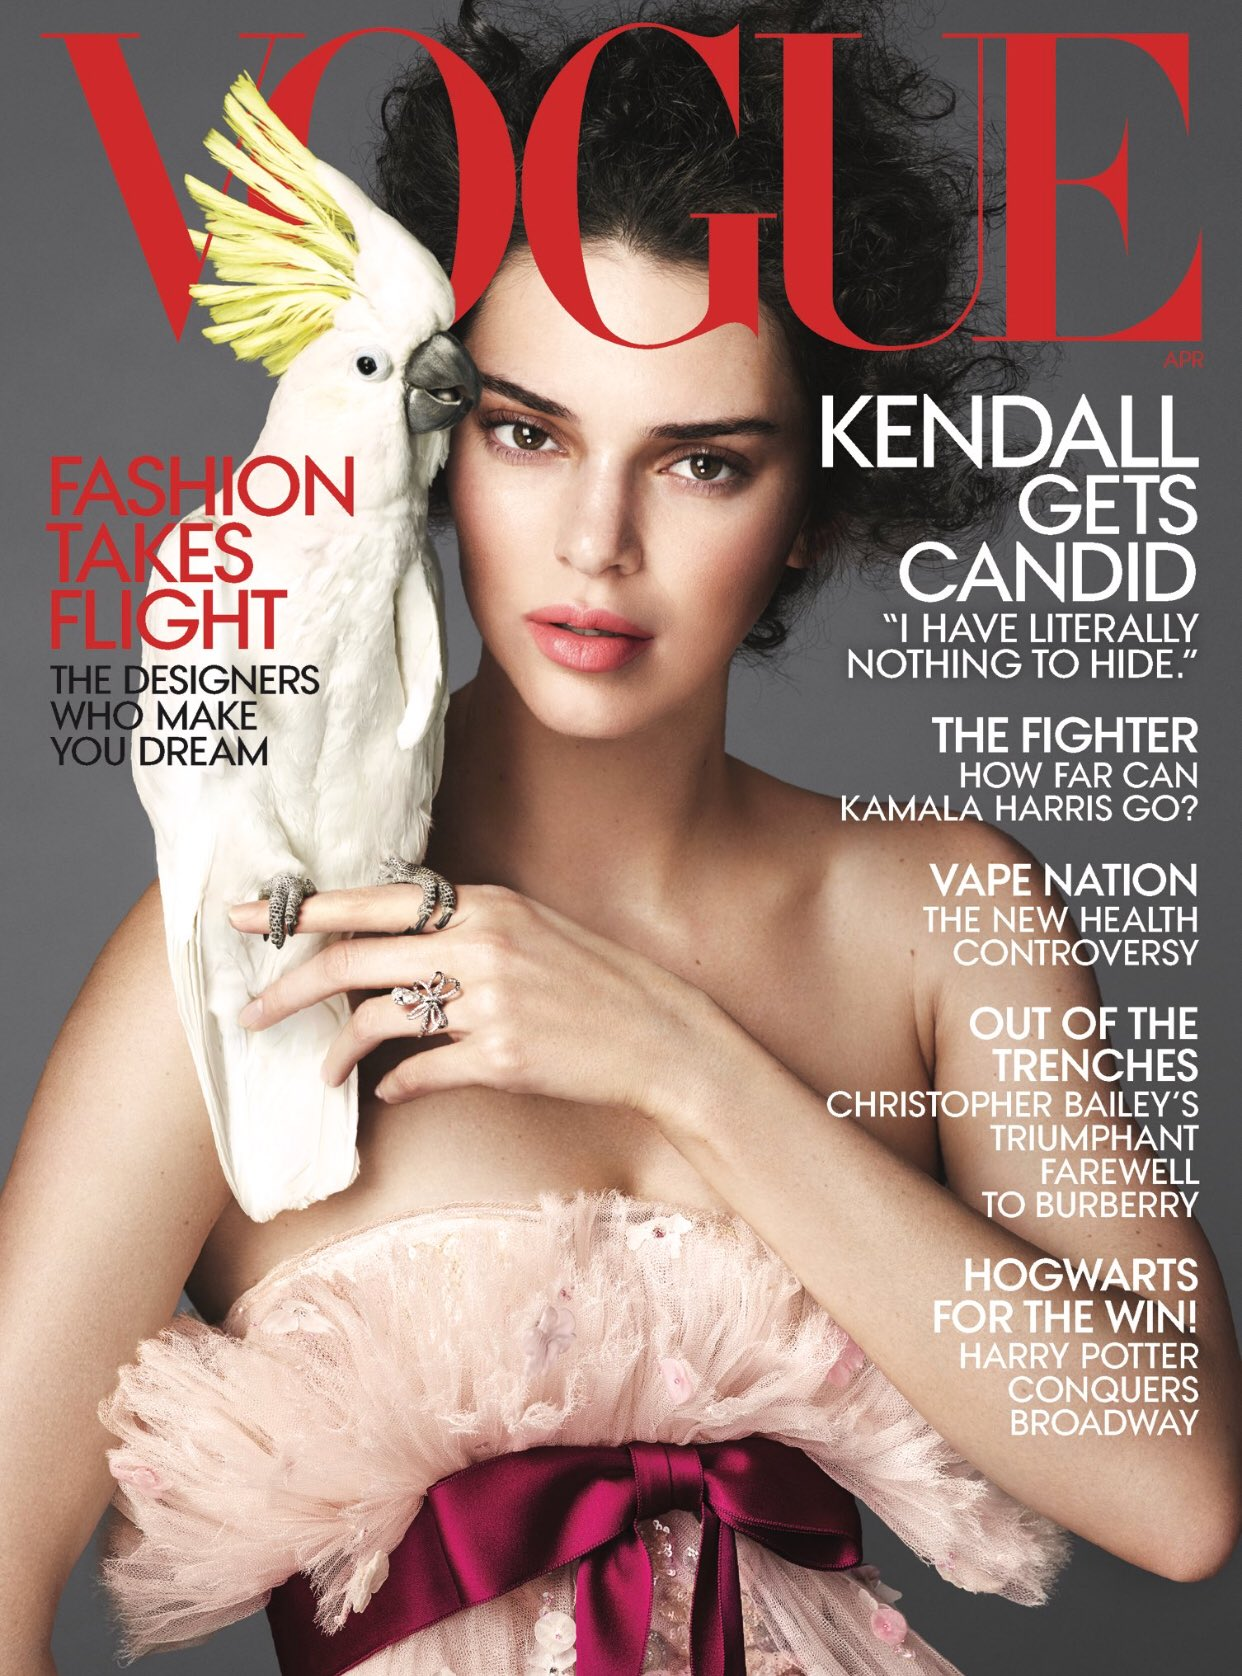 I mean?!?! So proud of @KendallJenner This @voguemagazine cover & shoot is just stunning!!!! https://t.co/MJ2dzAQKTx